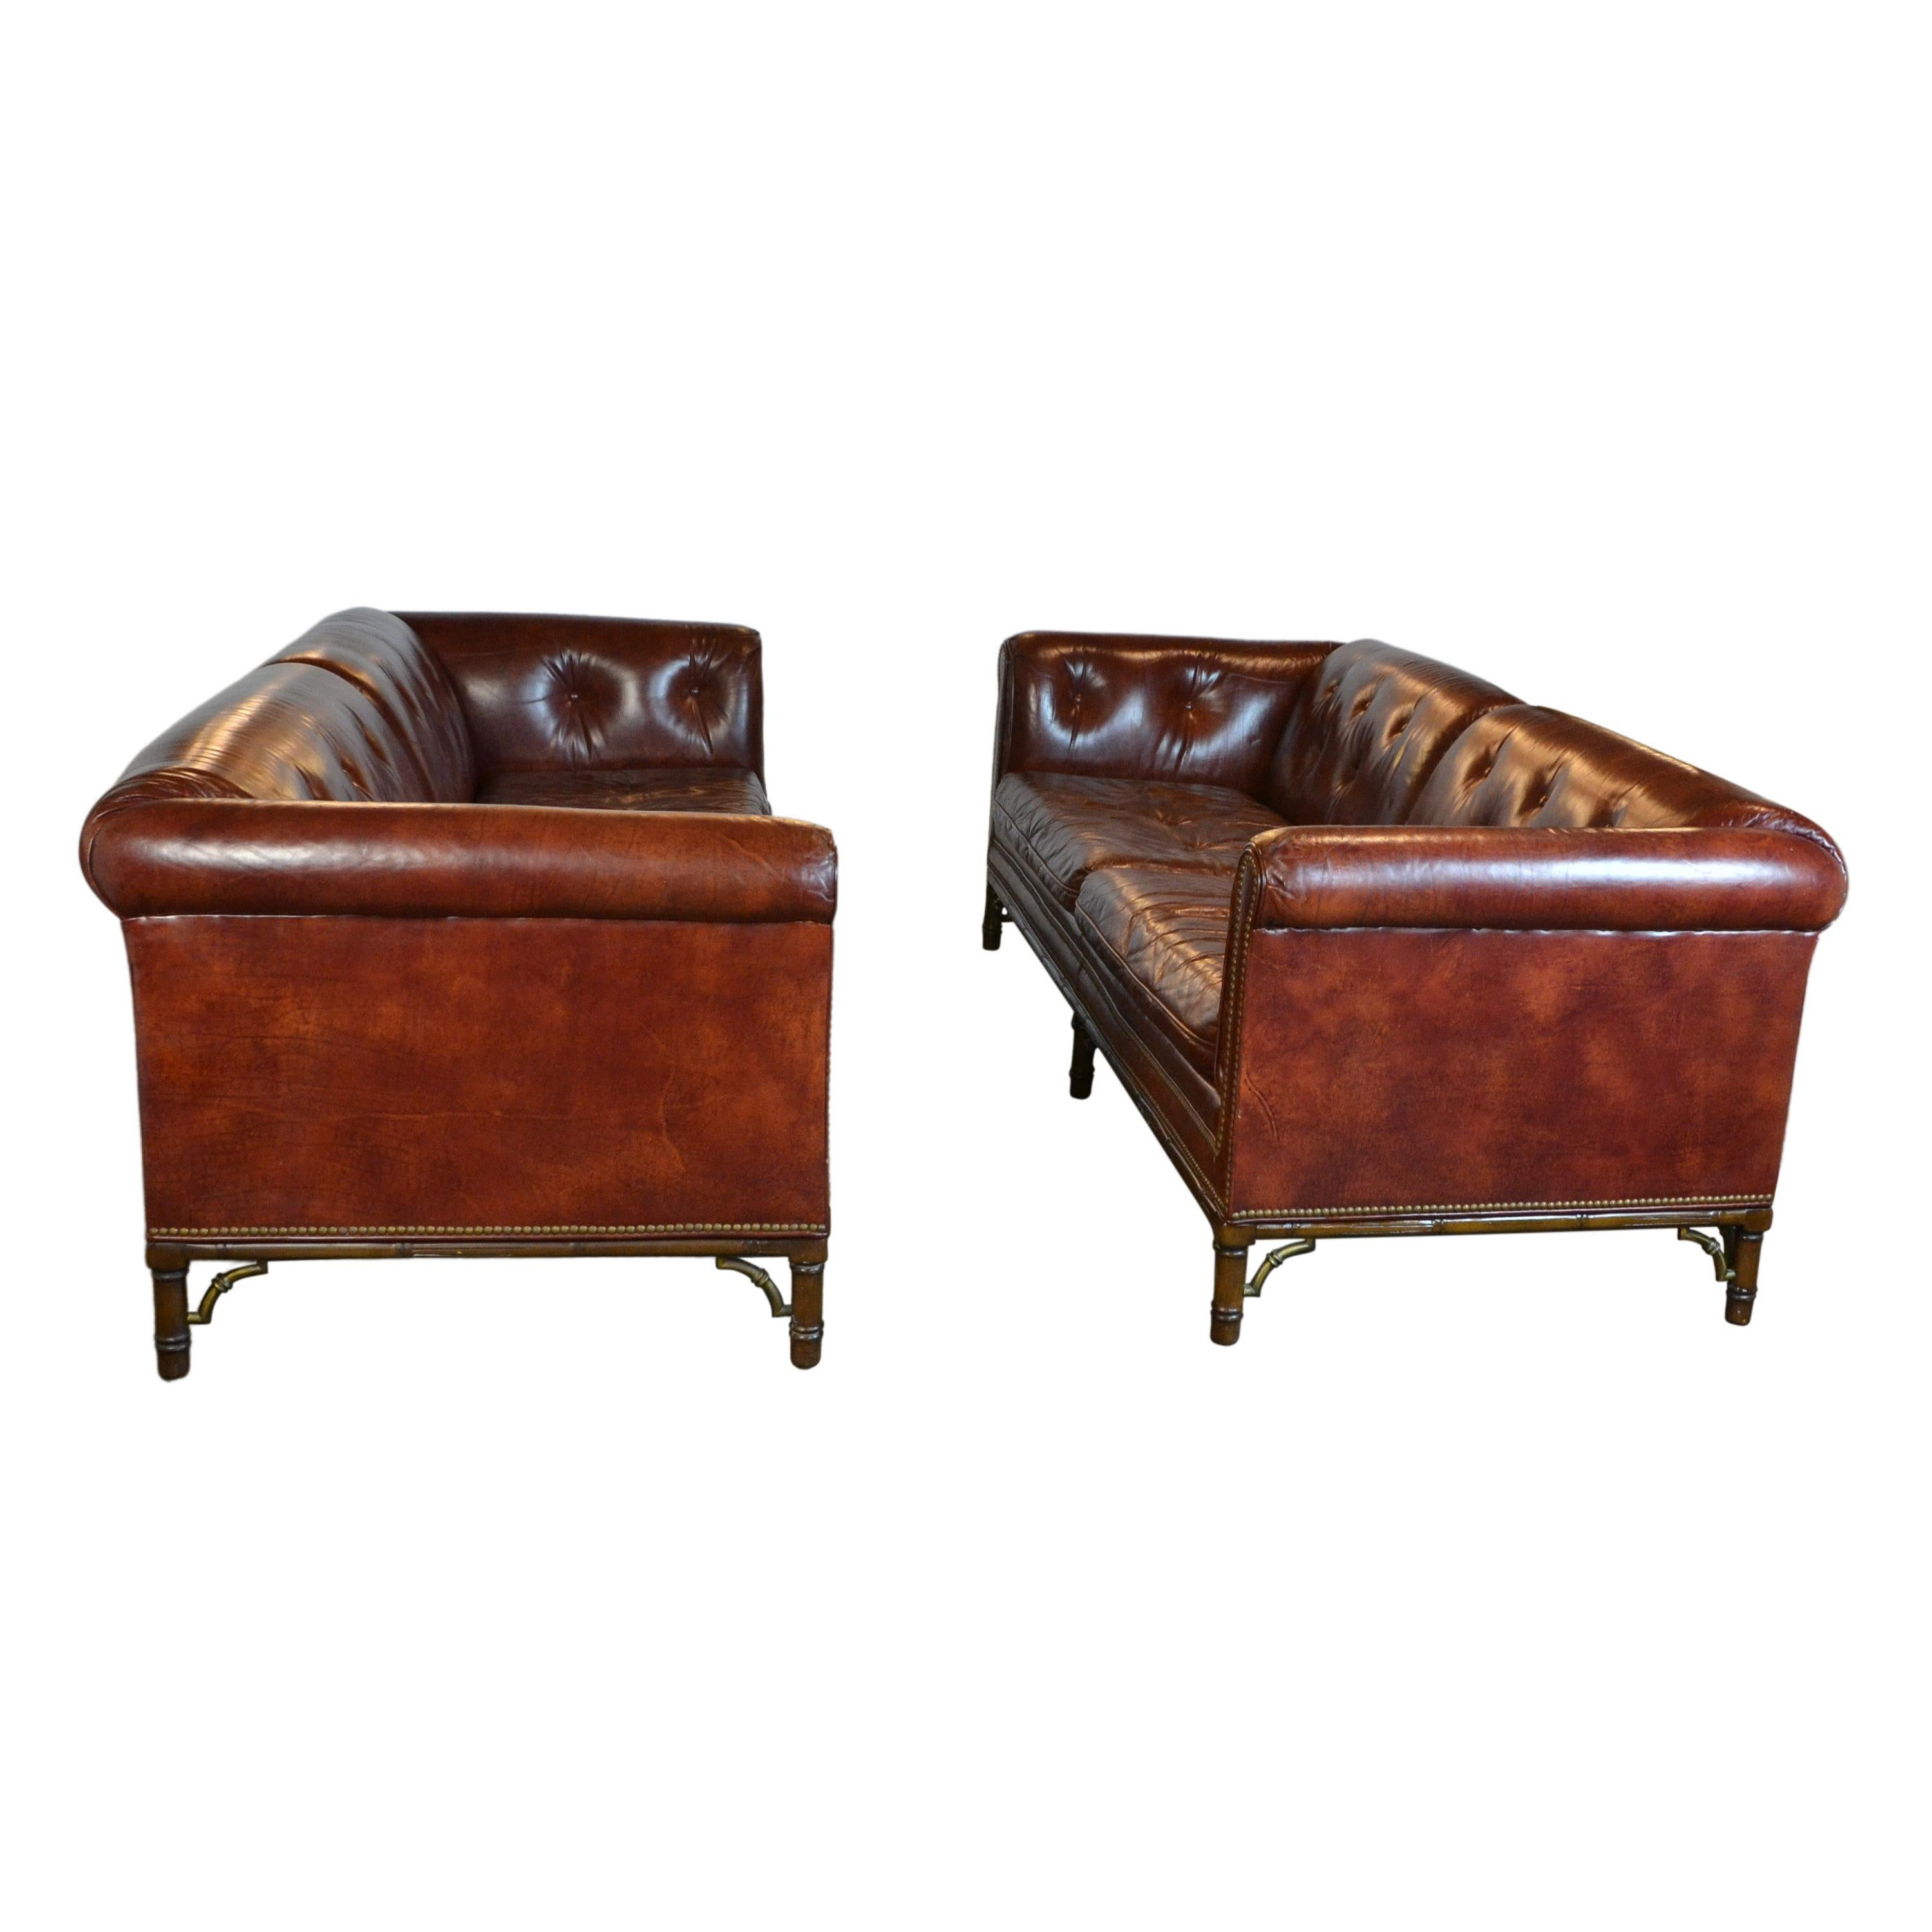 Pair of Tufted Leather Chesterfield Sofa's /Settee's